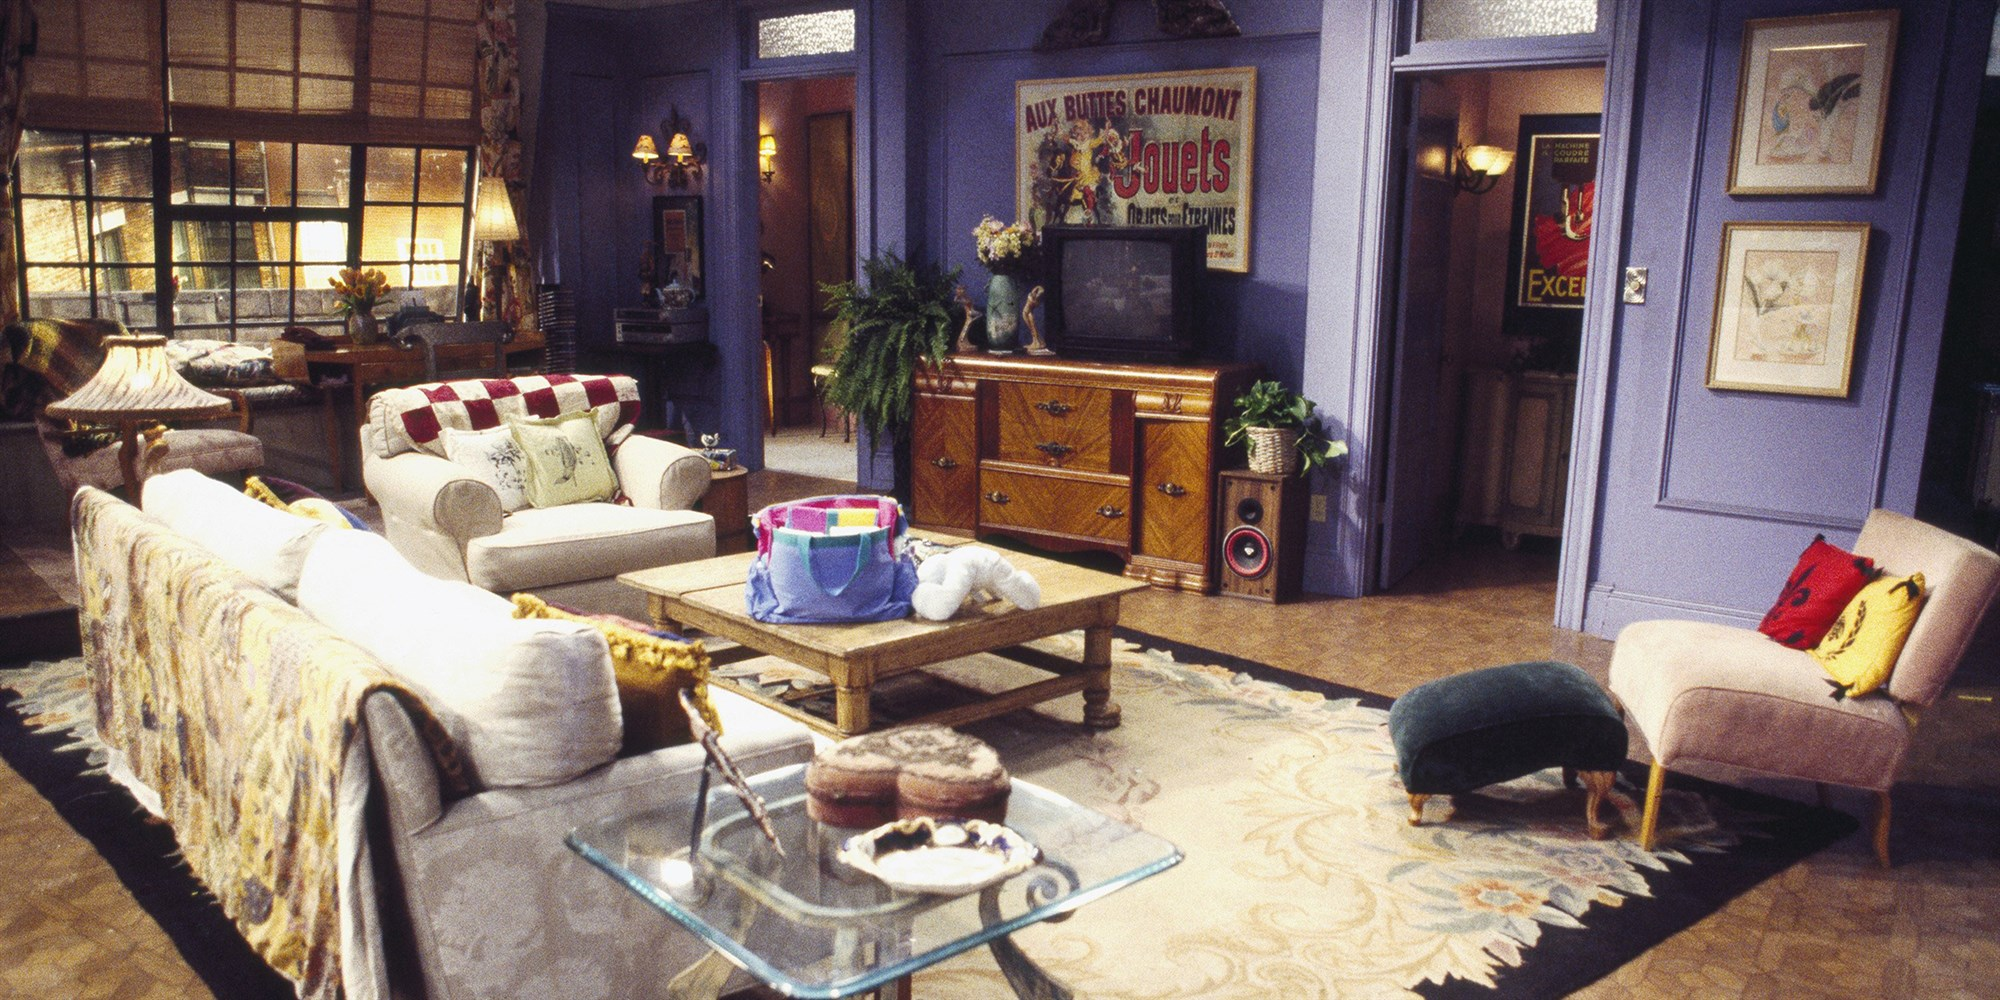 News:  'Friends' Fans Can Visit Rachel and Monica's Apartment in NYC This Fall